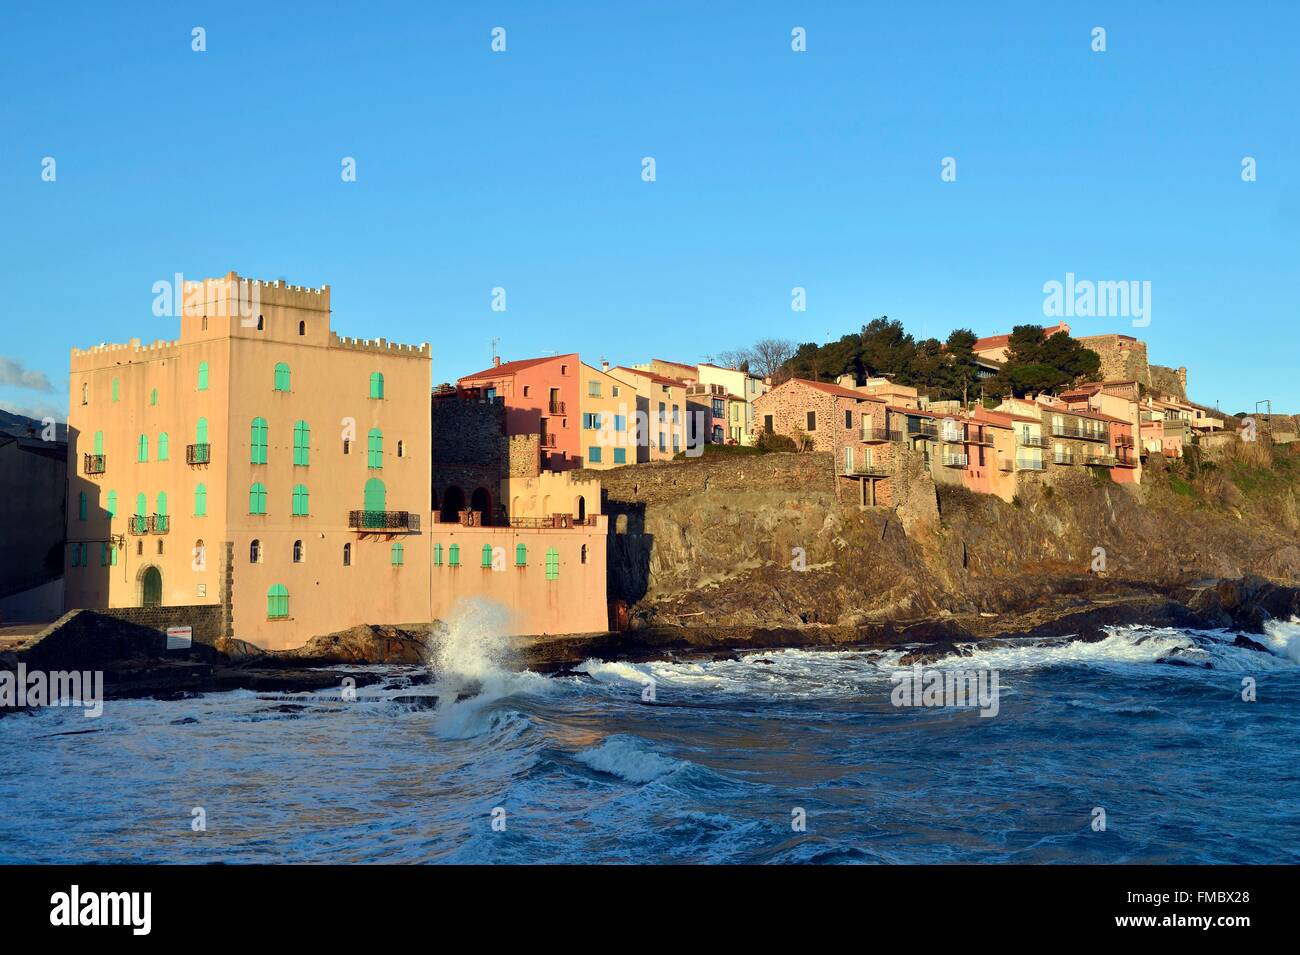 France, Pyrenees Orientales, Collioure, Moure district - Stock Image